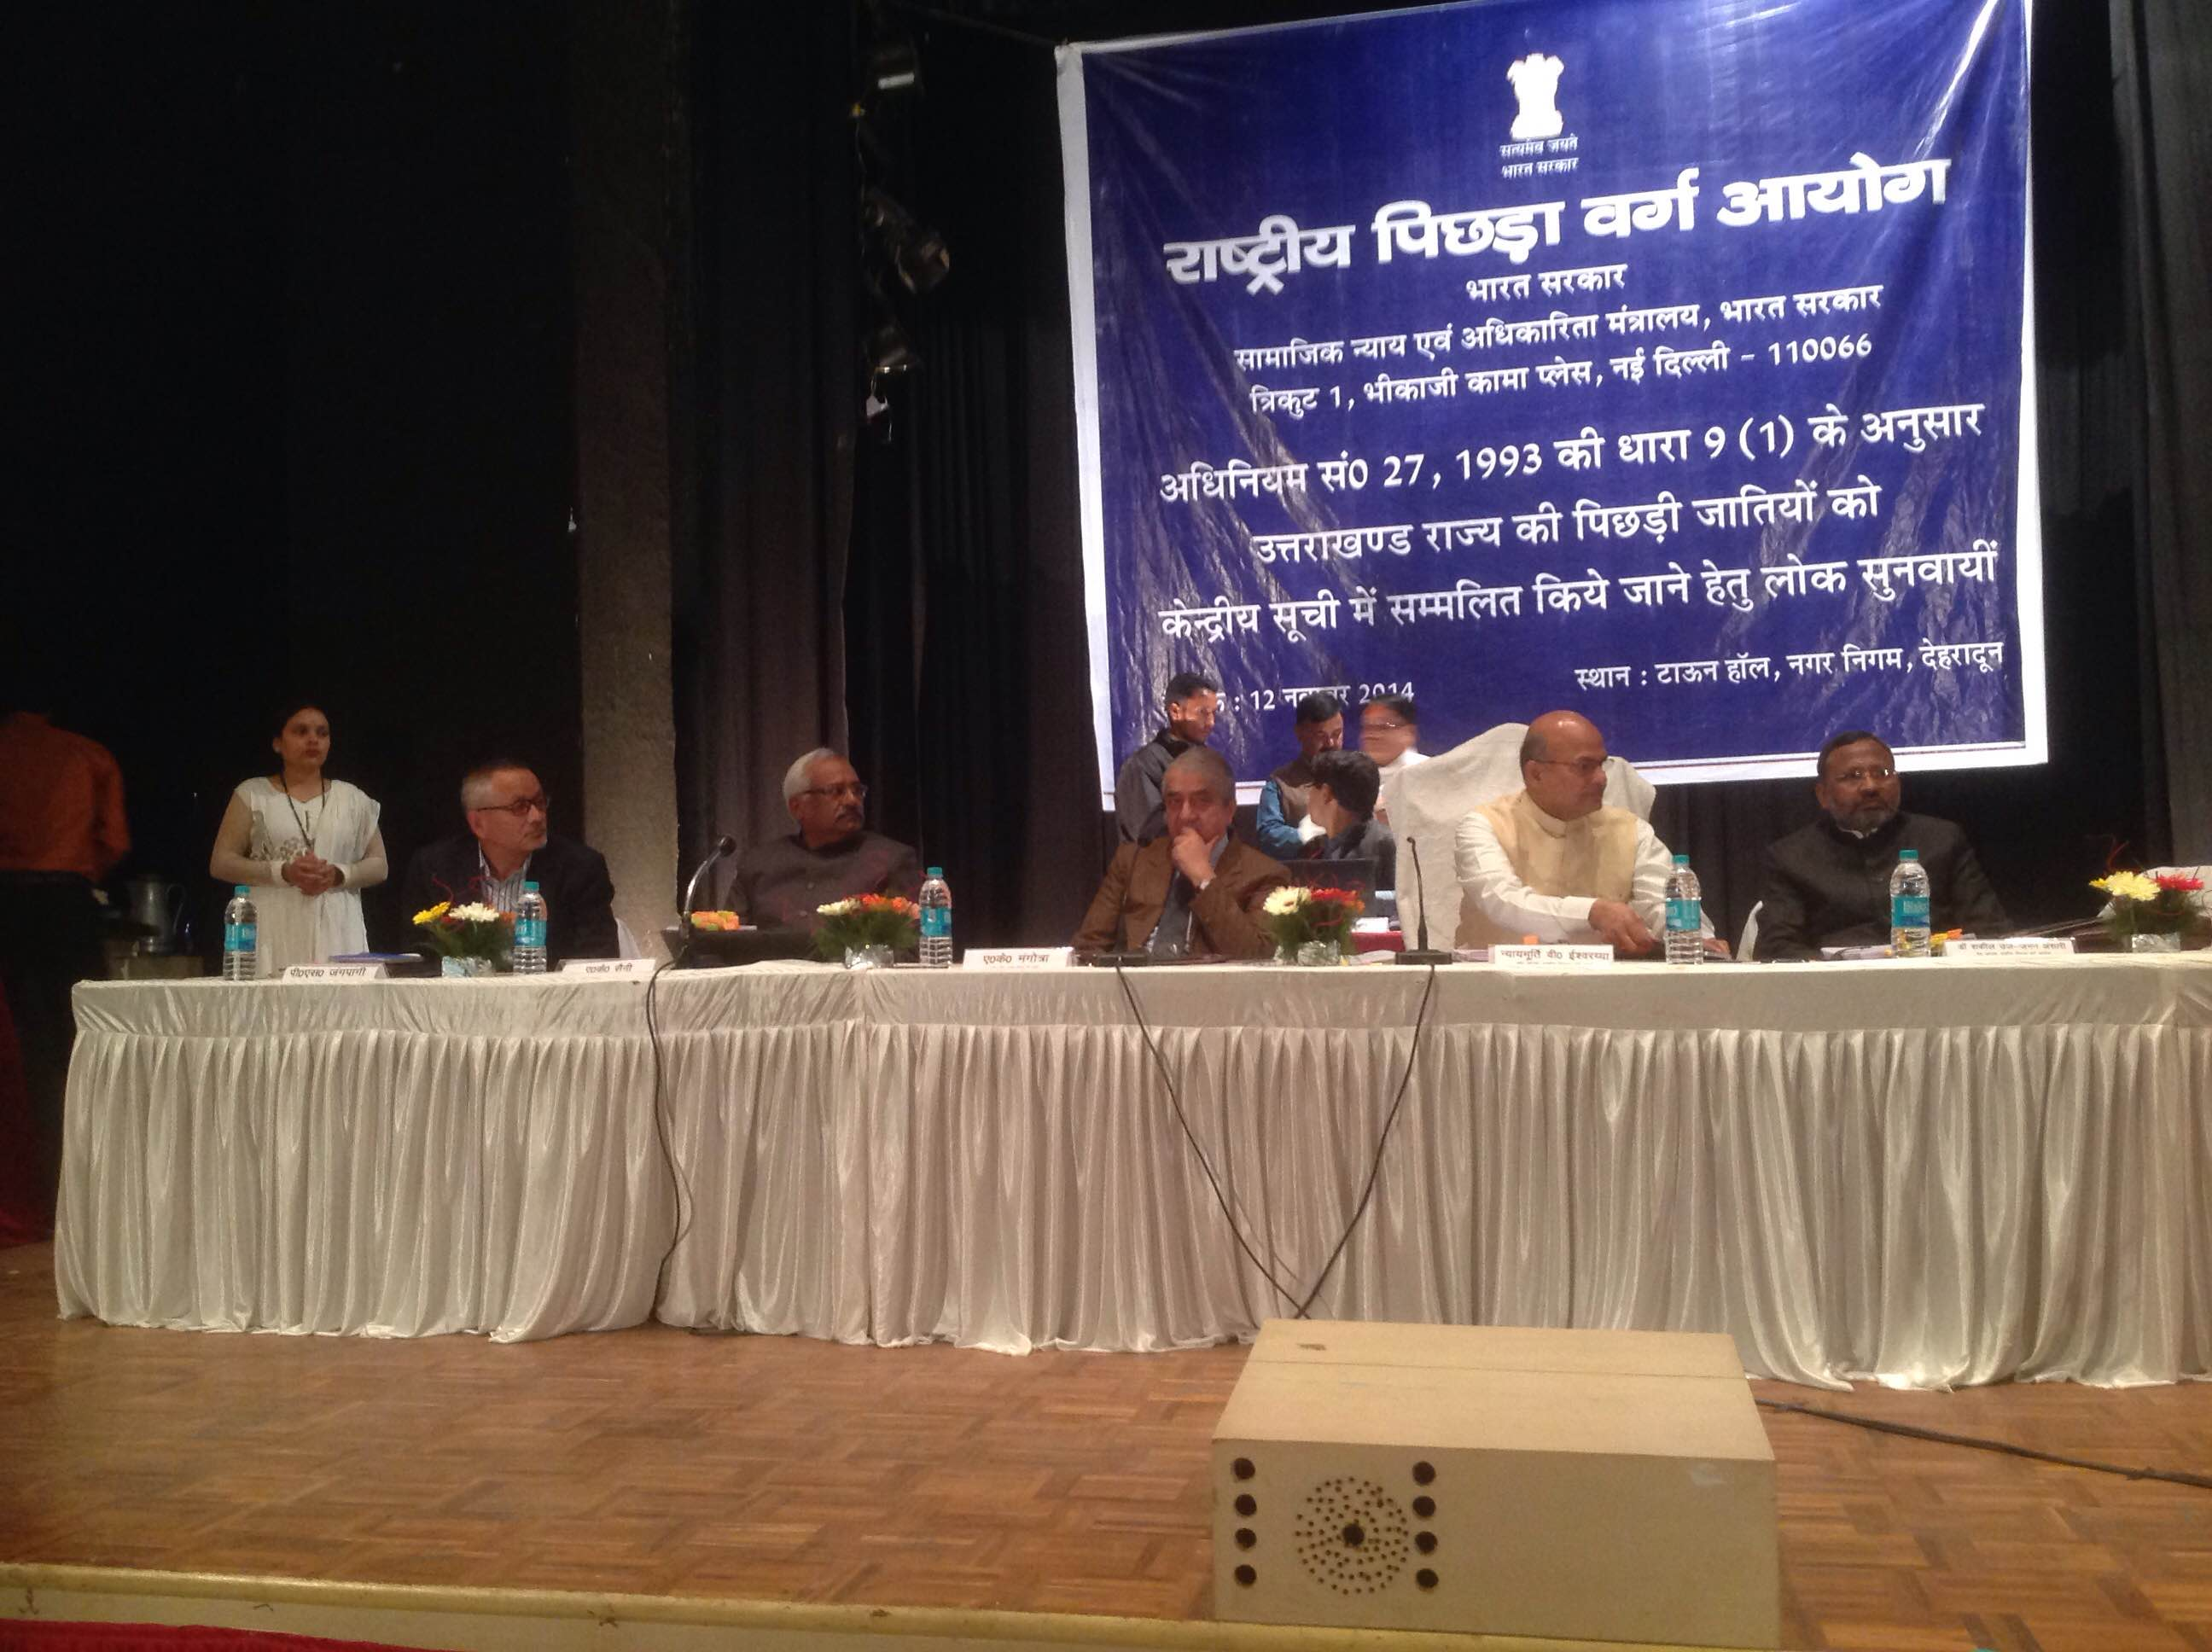 Public Hearing held at Uttarakhand from 12-13 November 2014